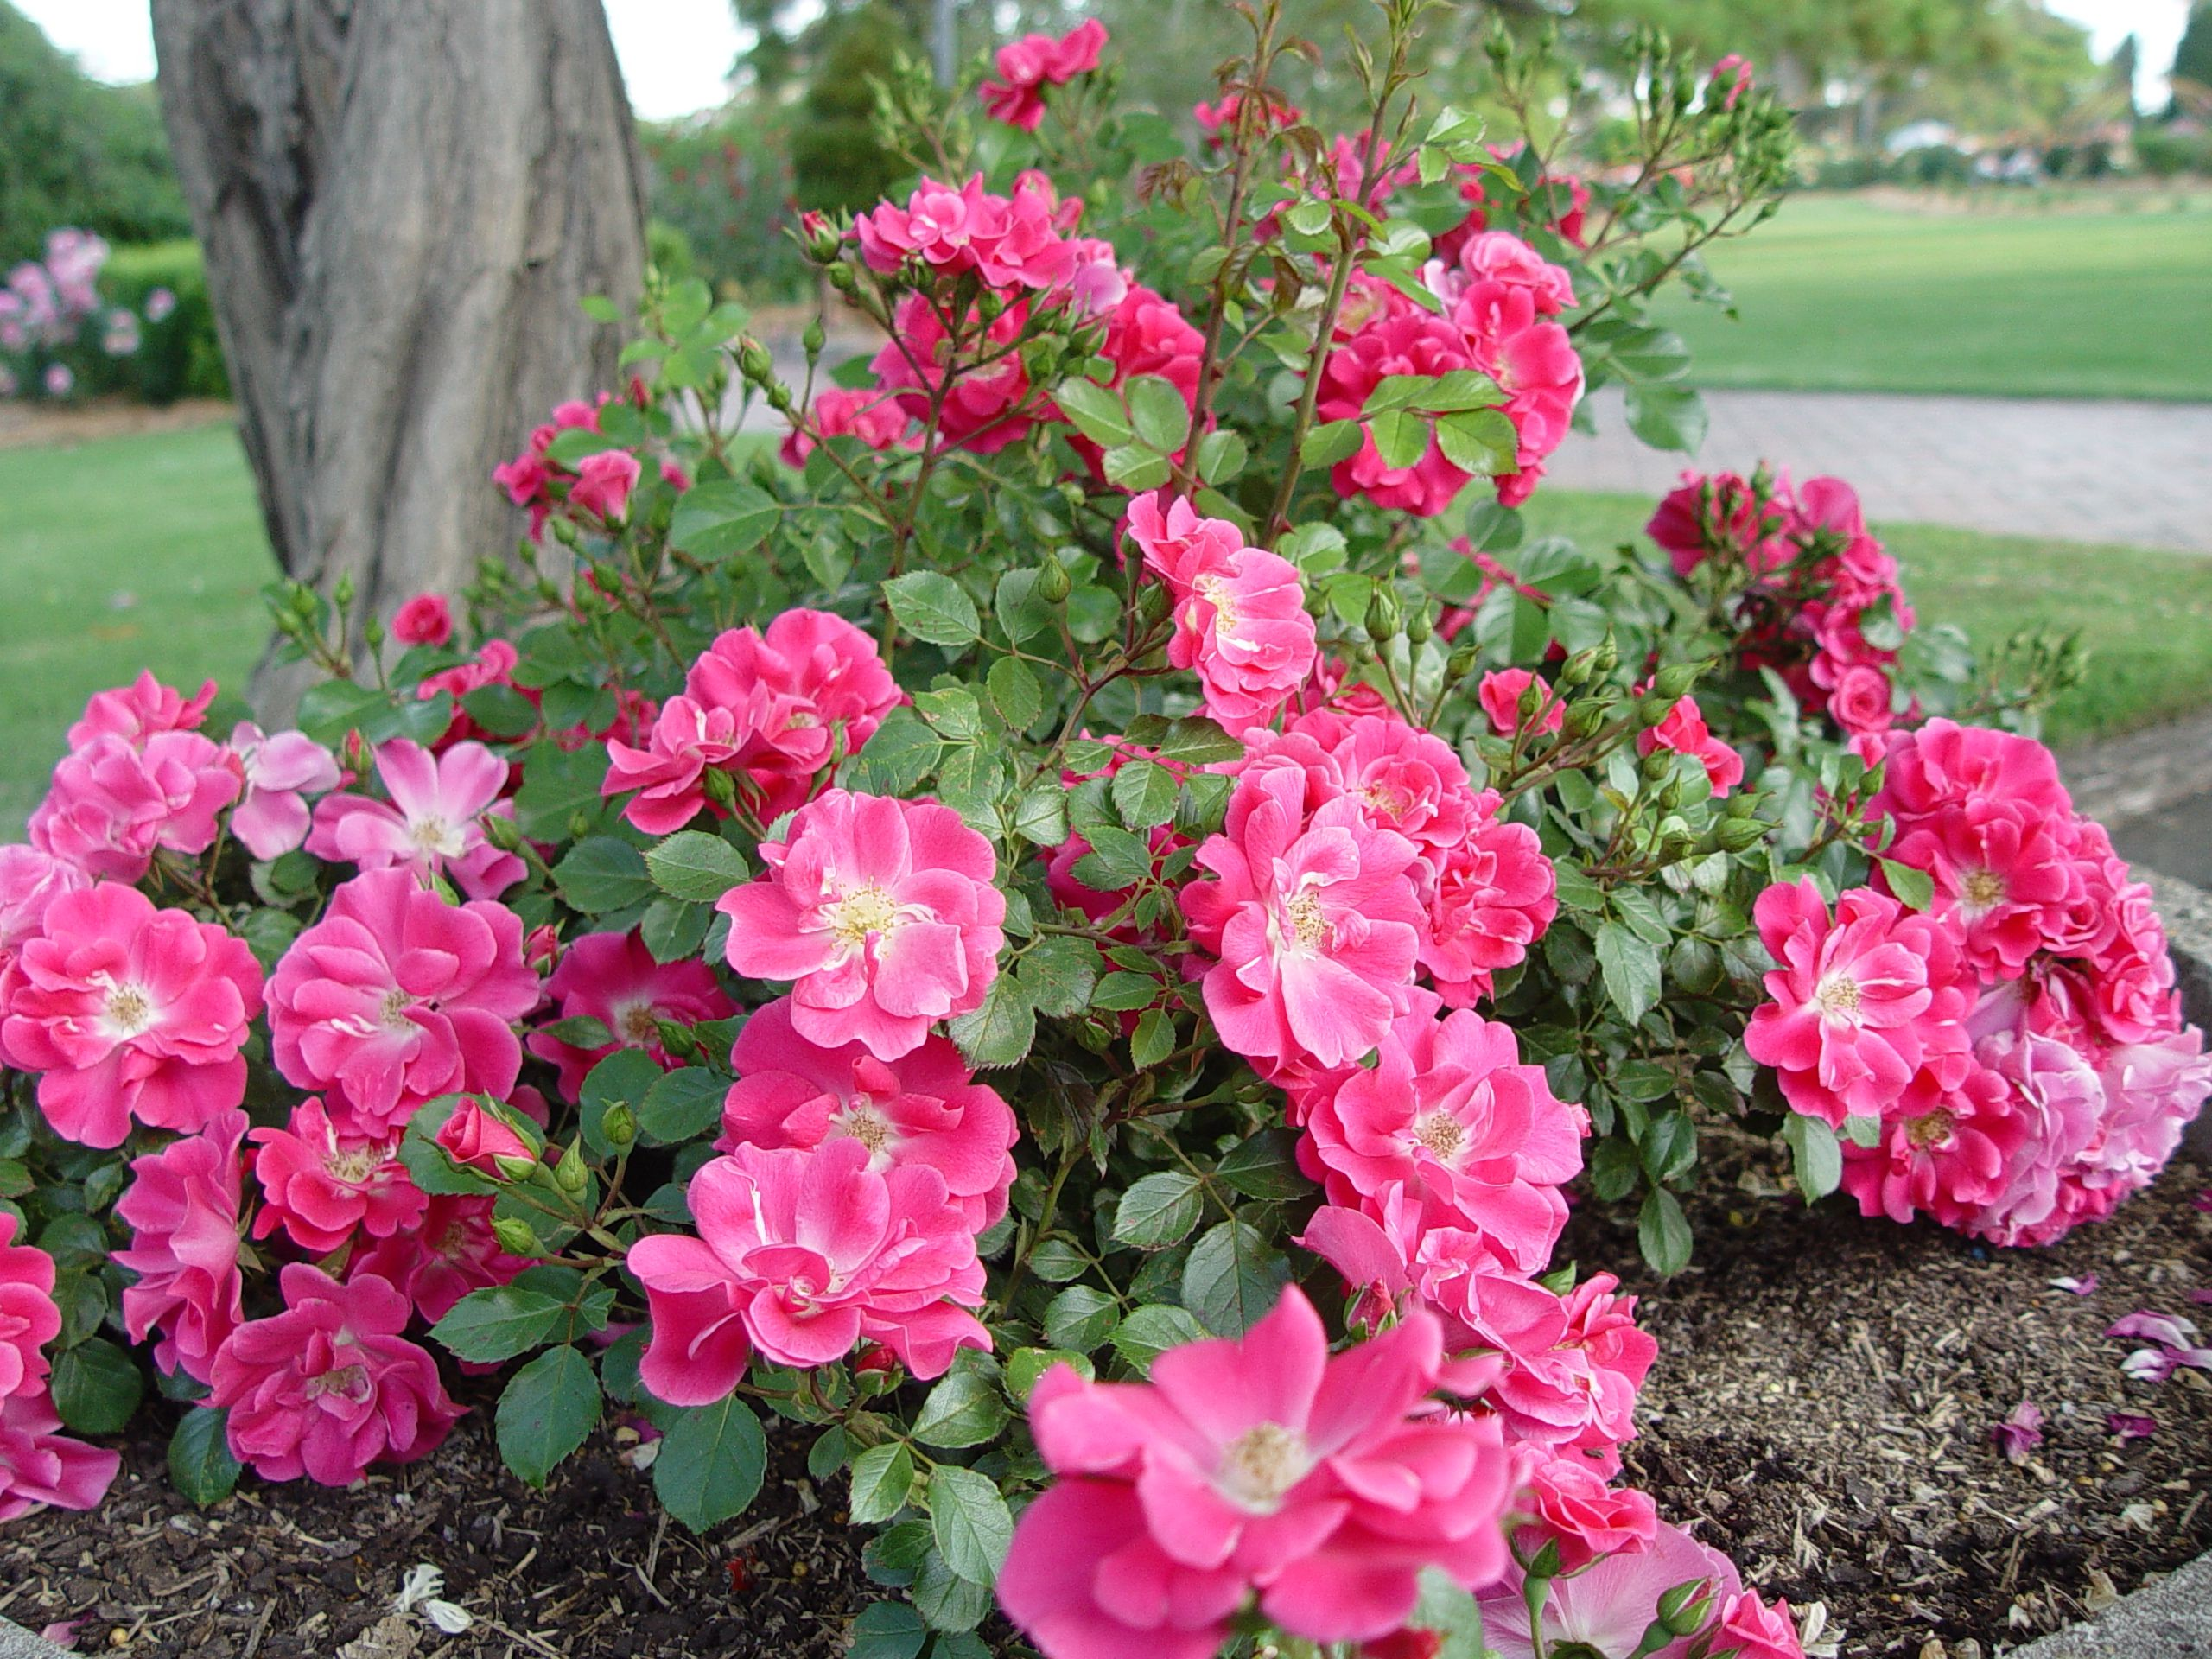 Magic carpet beach blanket spray free landscape rose from swanes spray free landscape rose from swanes we say superior to pink flower carpet dhlflorist Image collections